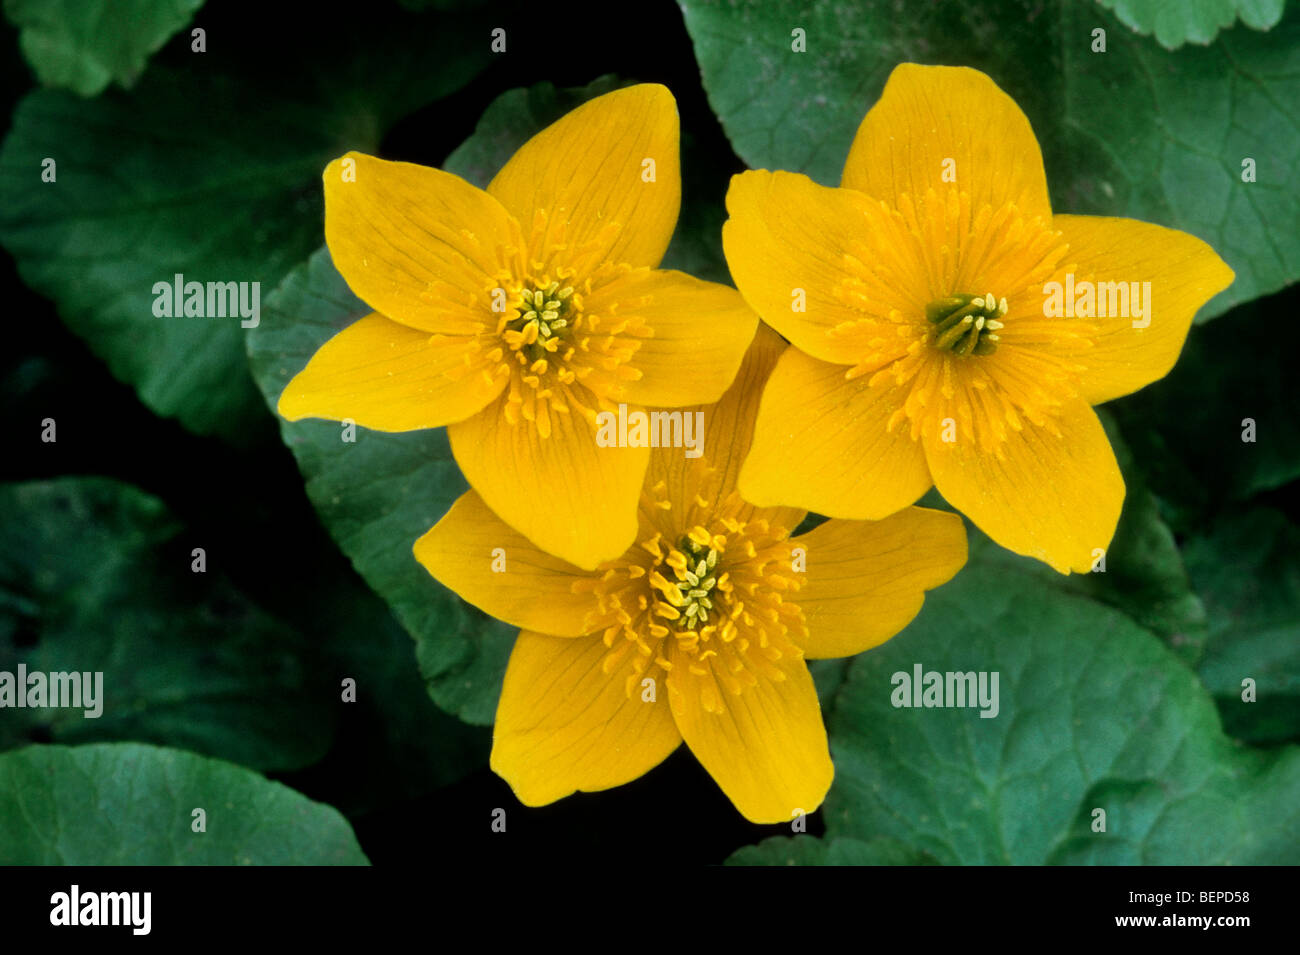 King Cup Flowers Marsh Marigold Stock Photos King Cup Flowers